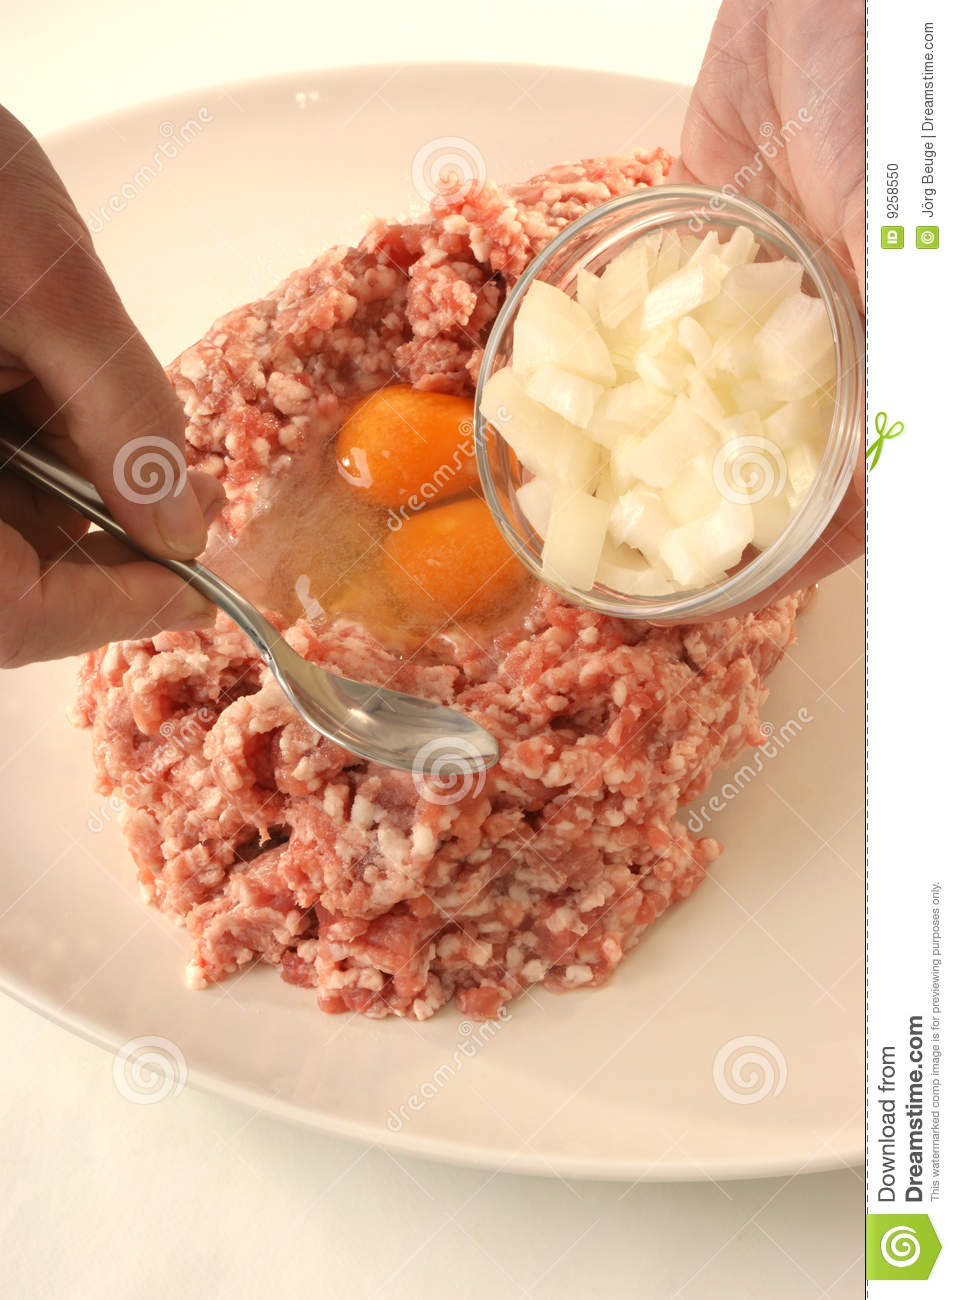 Preparing Mince To Make Meatballs Stock Photo Image Of Preparation